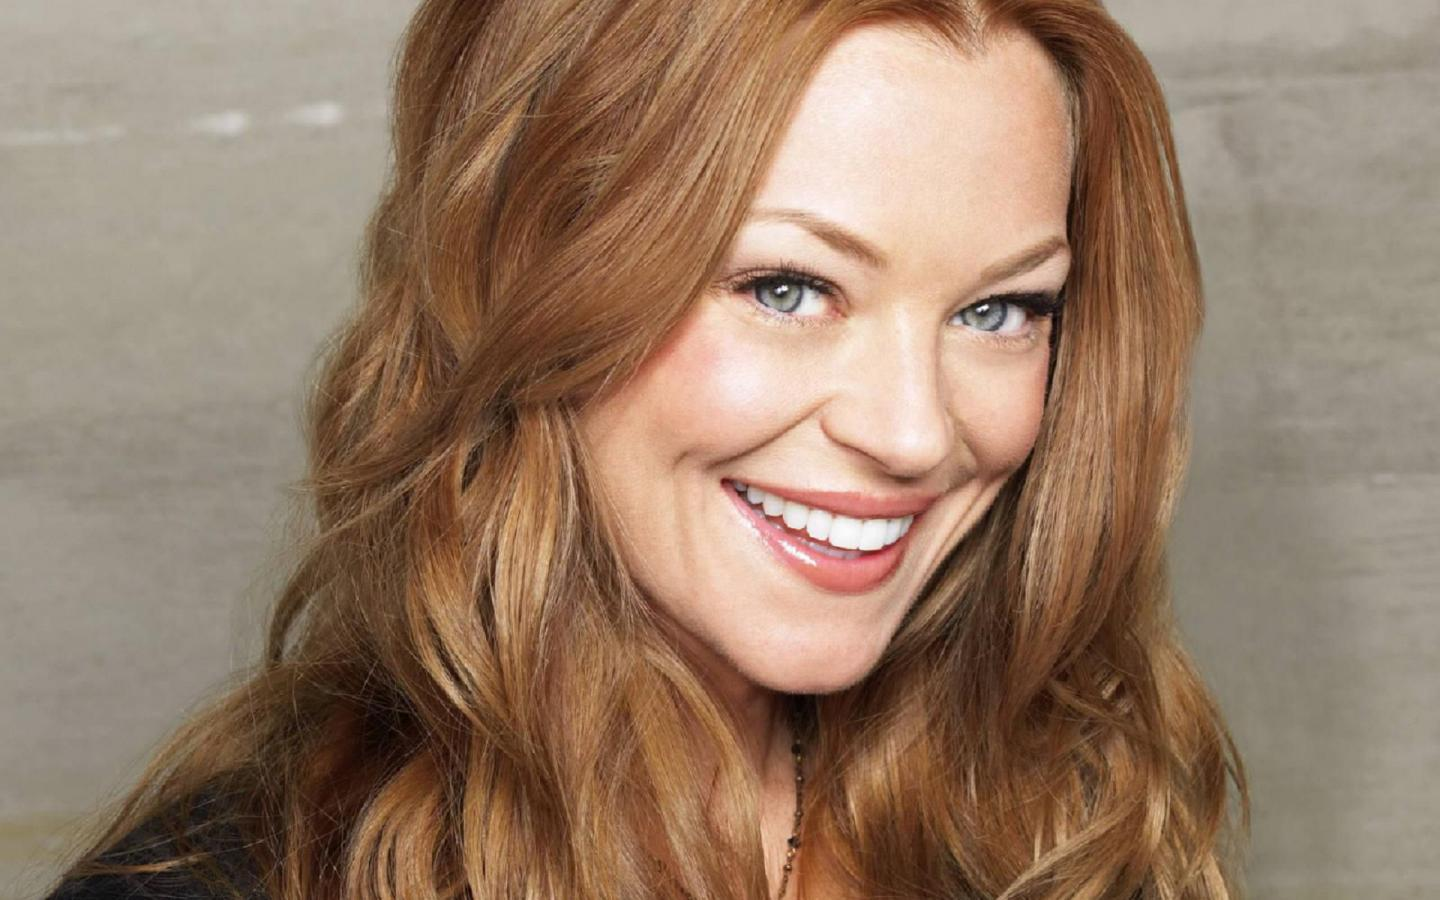 1440x900 - Charlotte Ross Wallpapers 13